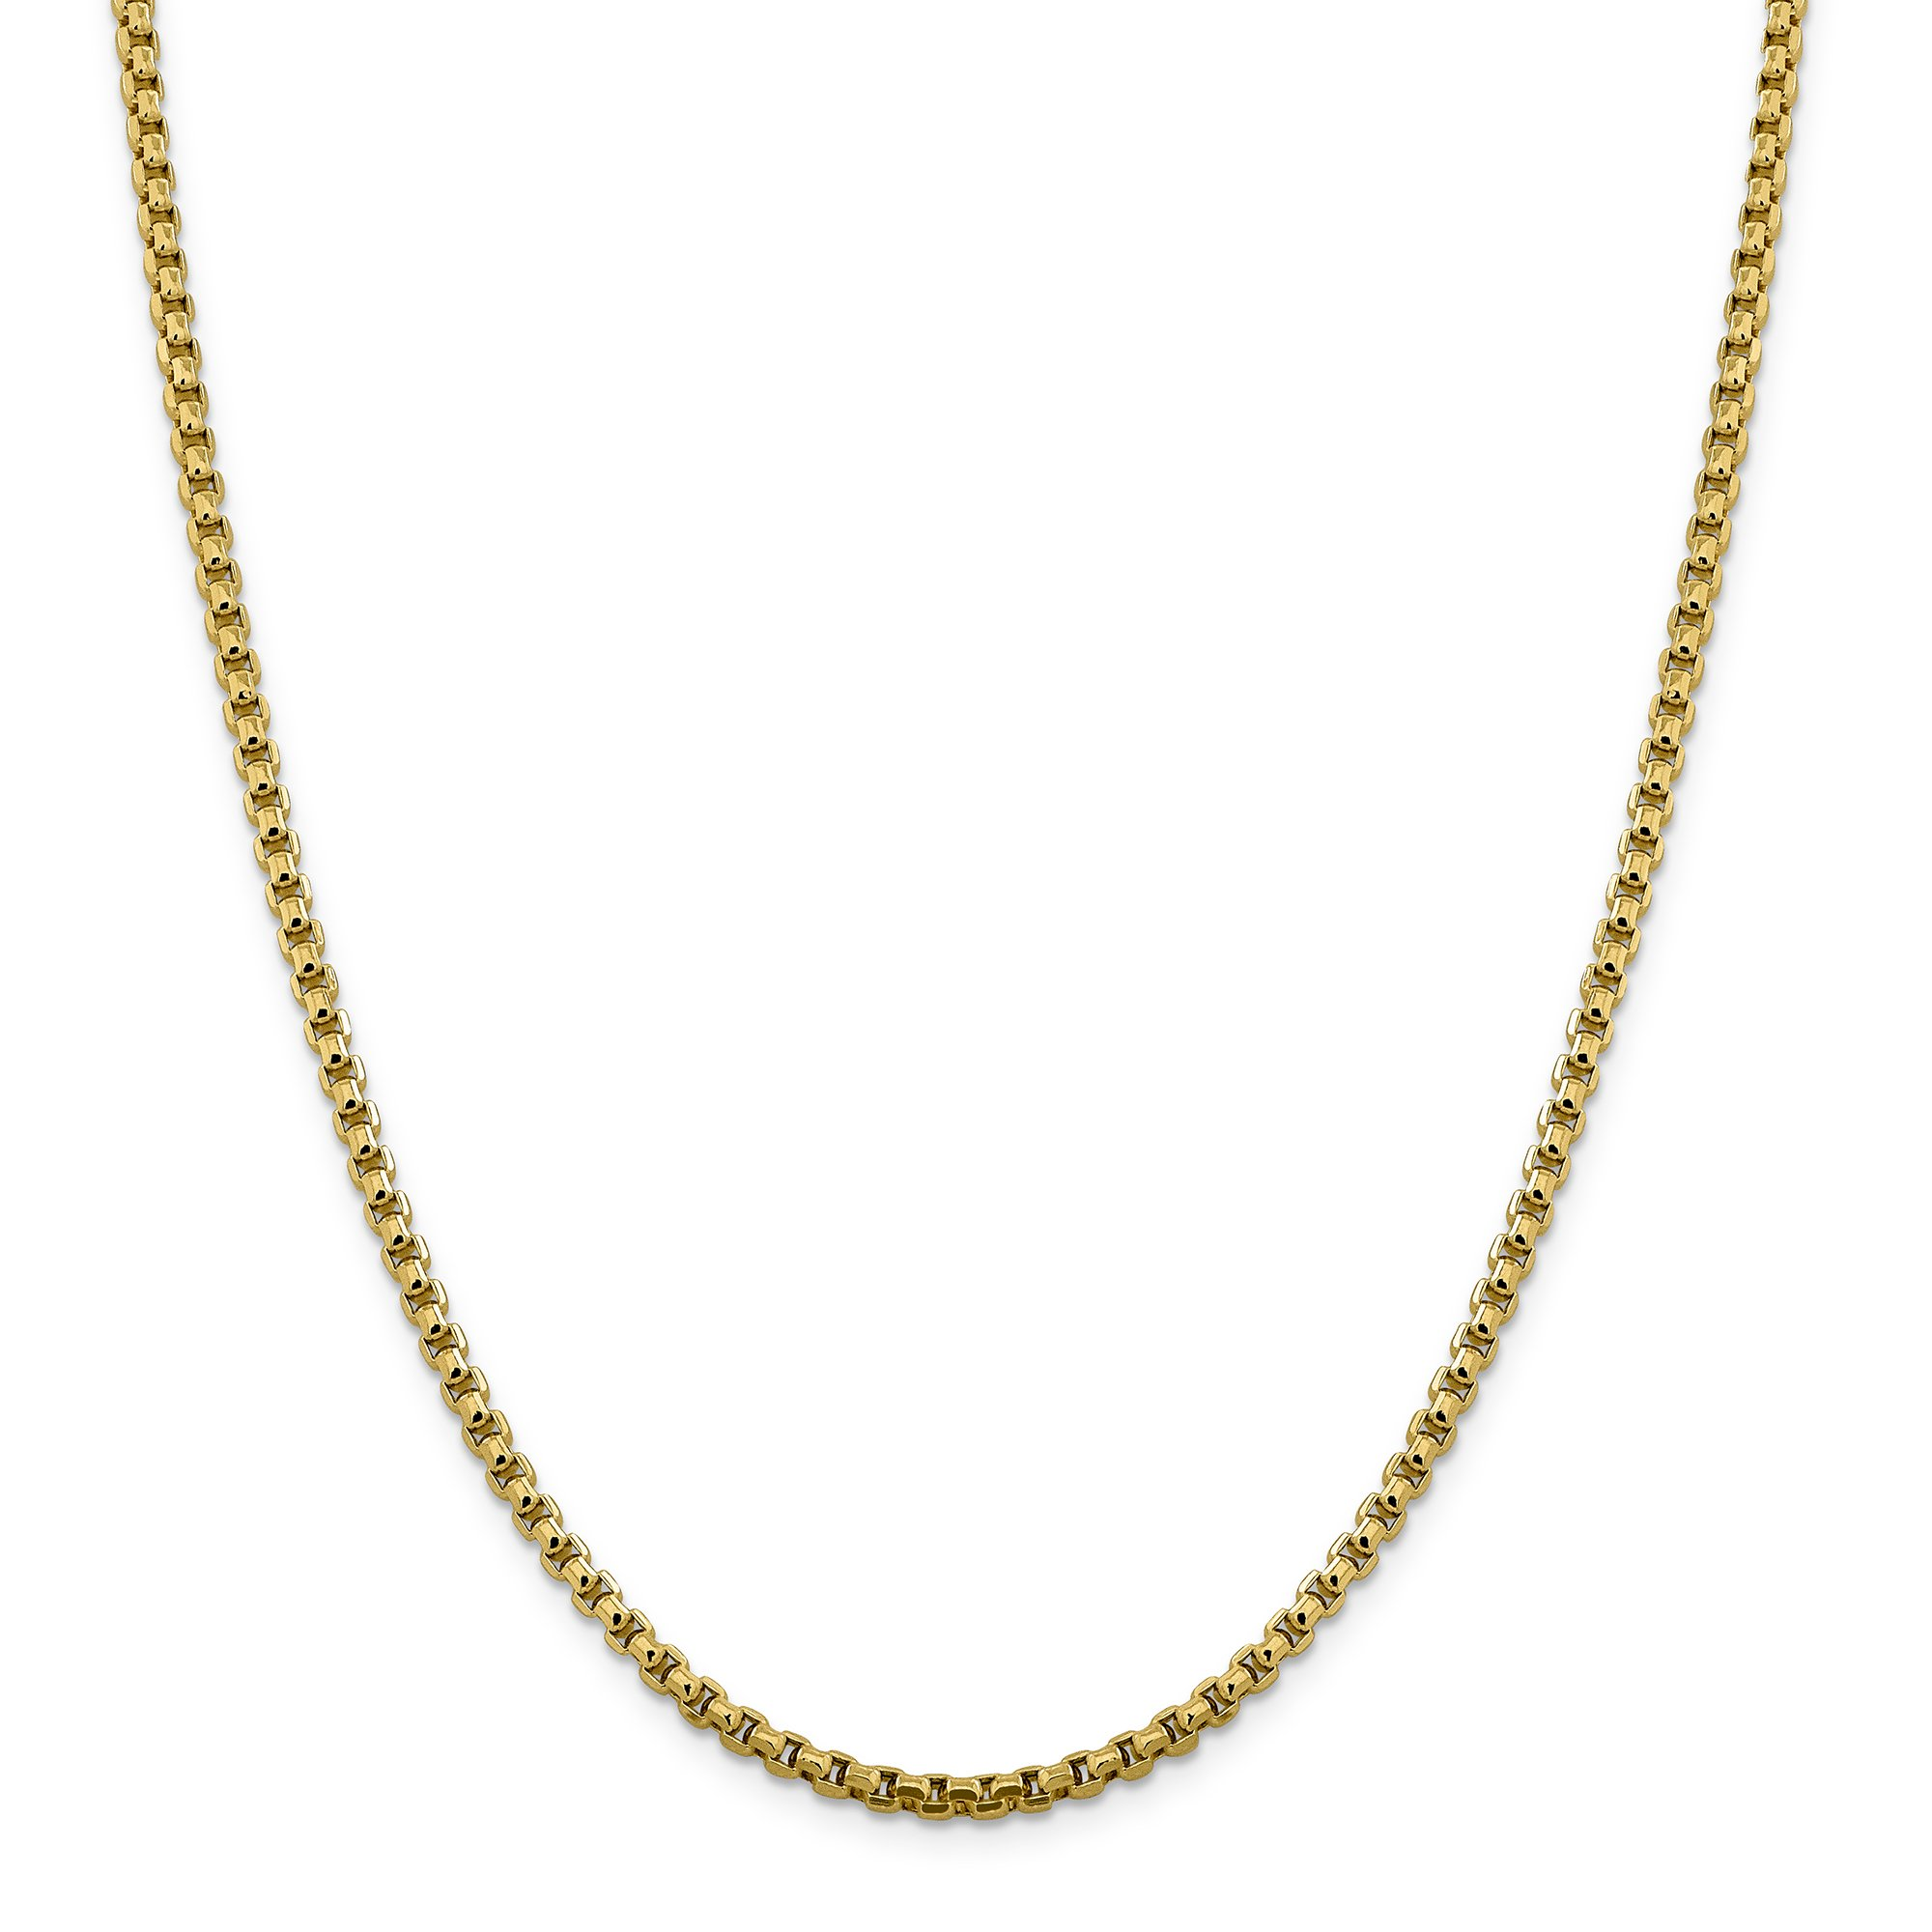 ICE CARATS 14k Yellow Gold 3.6mm Round Link Box Chain Necklace 20 Inch Fine Jewelry Gift Set For Women Heart